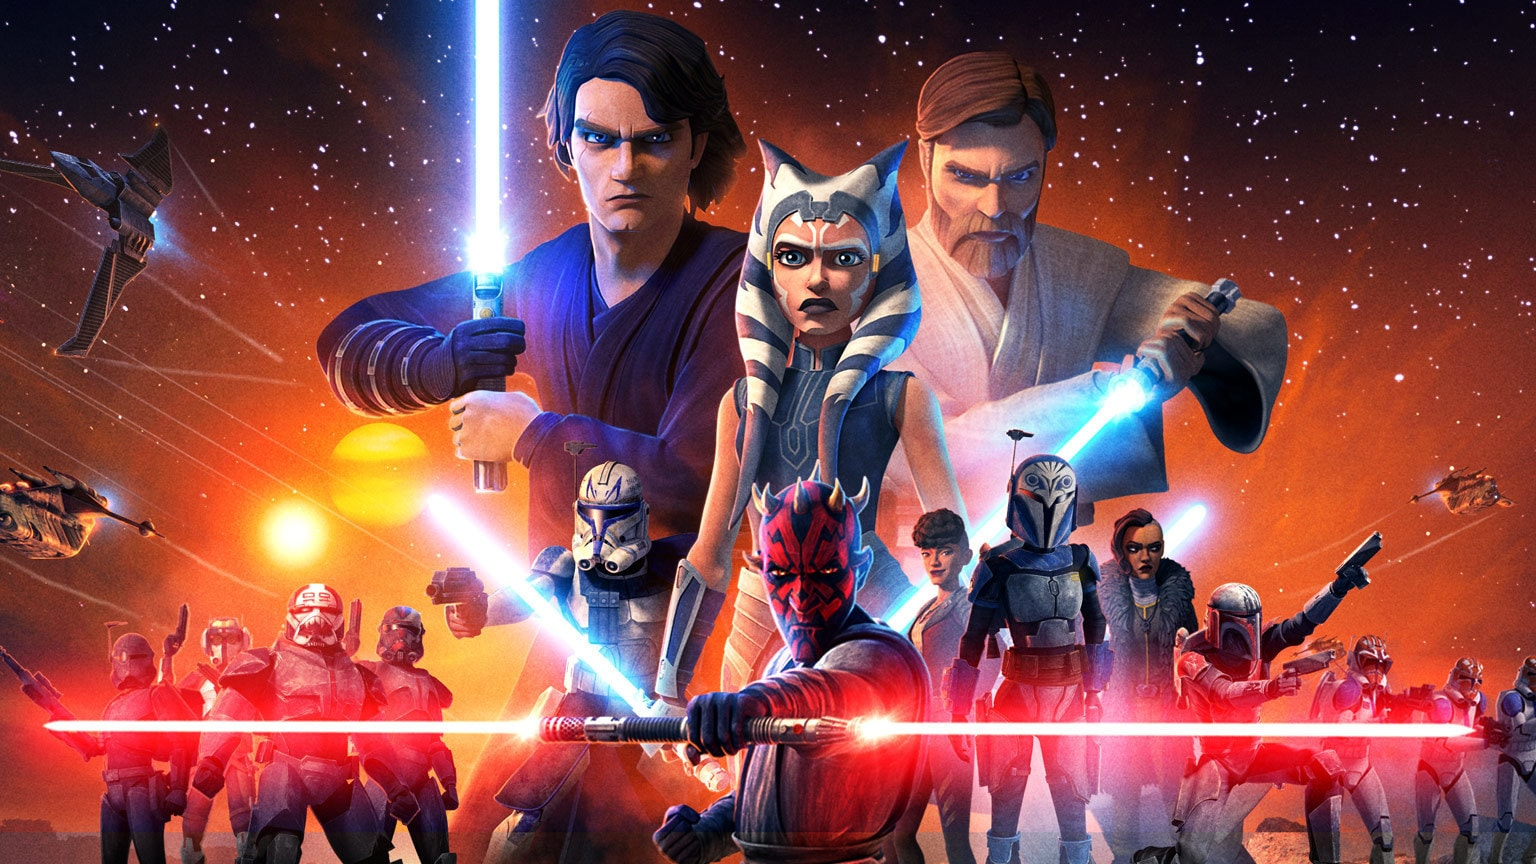 The Final Season of Star Wars: The Clone Wars Begins!